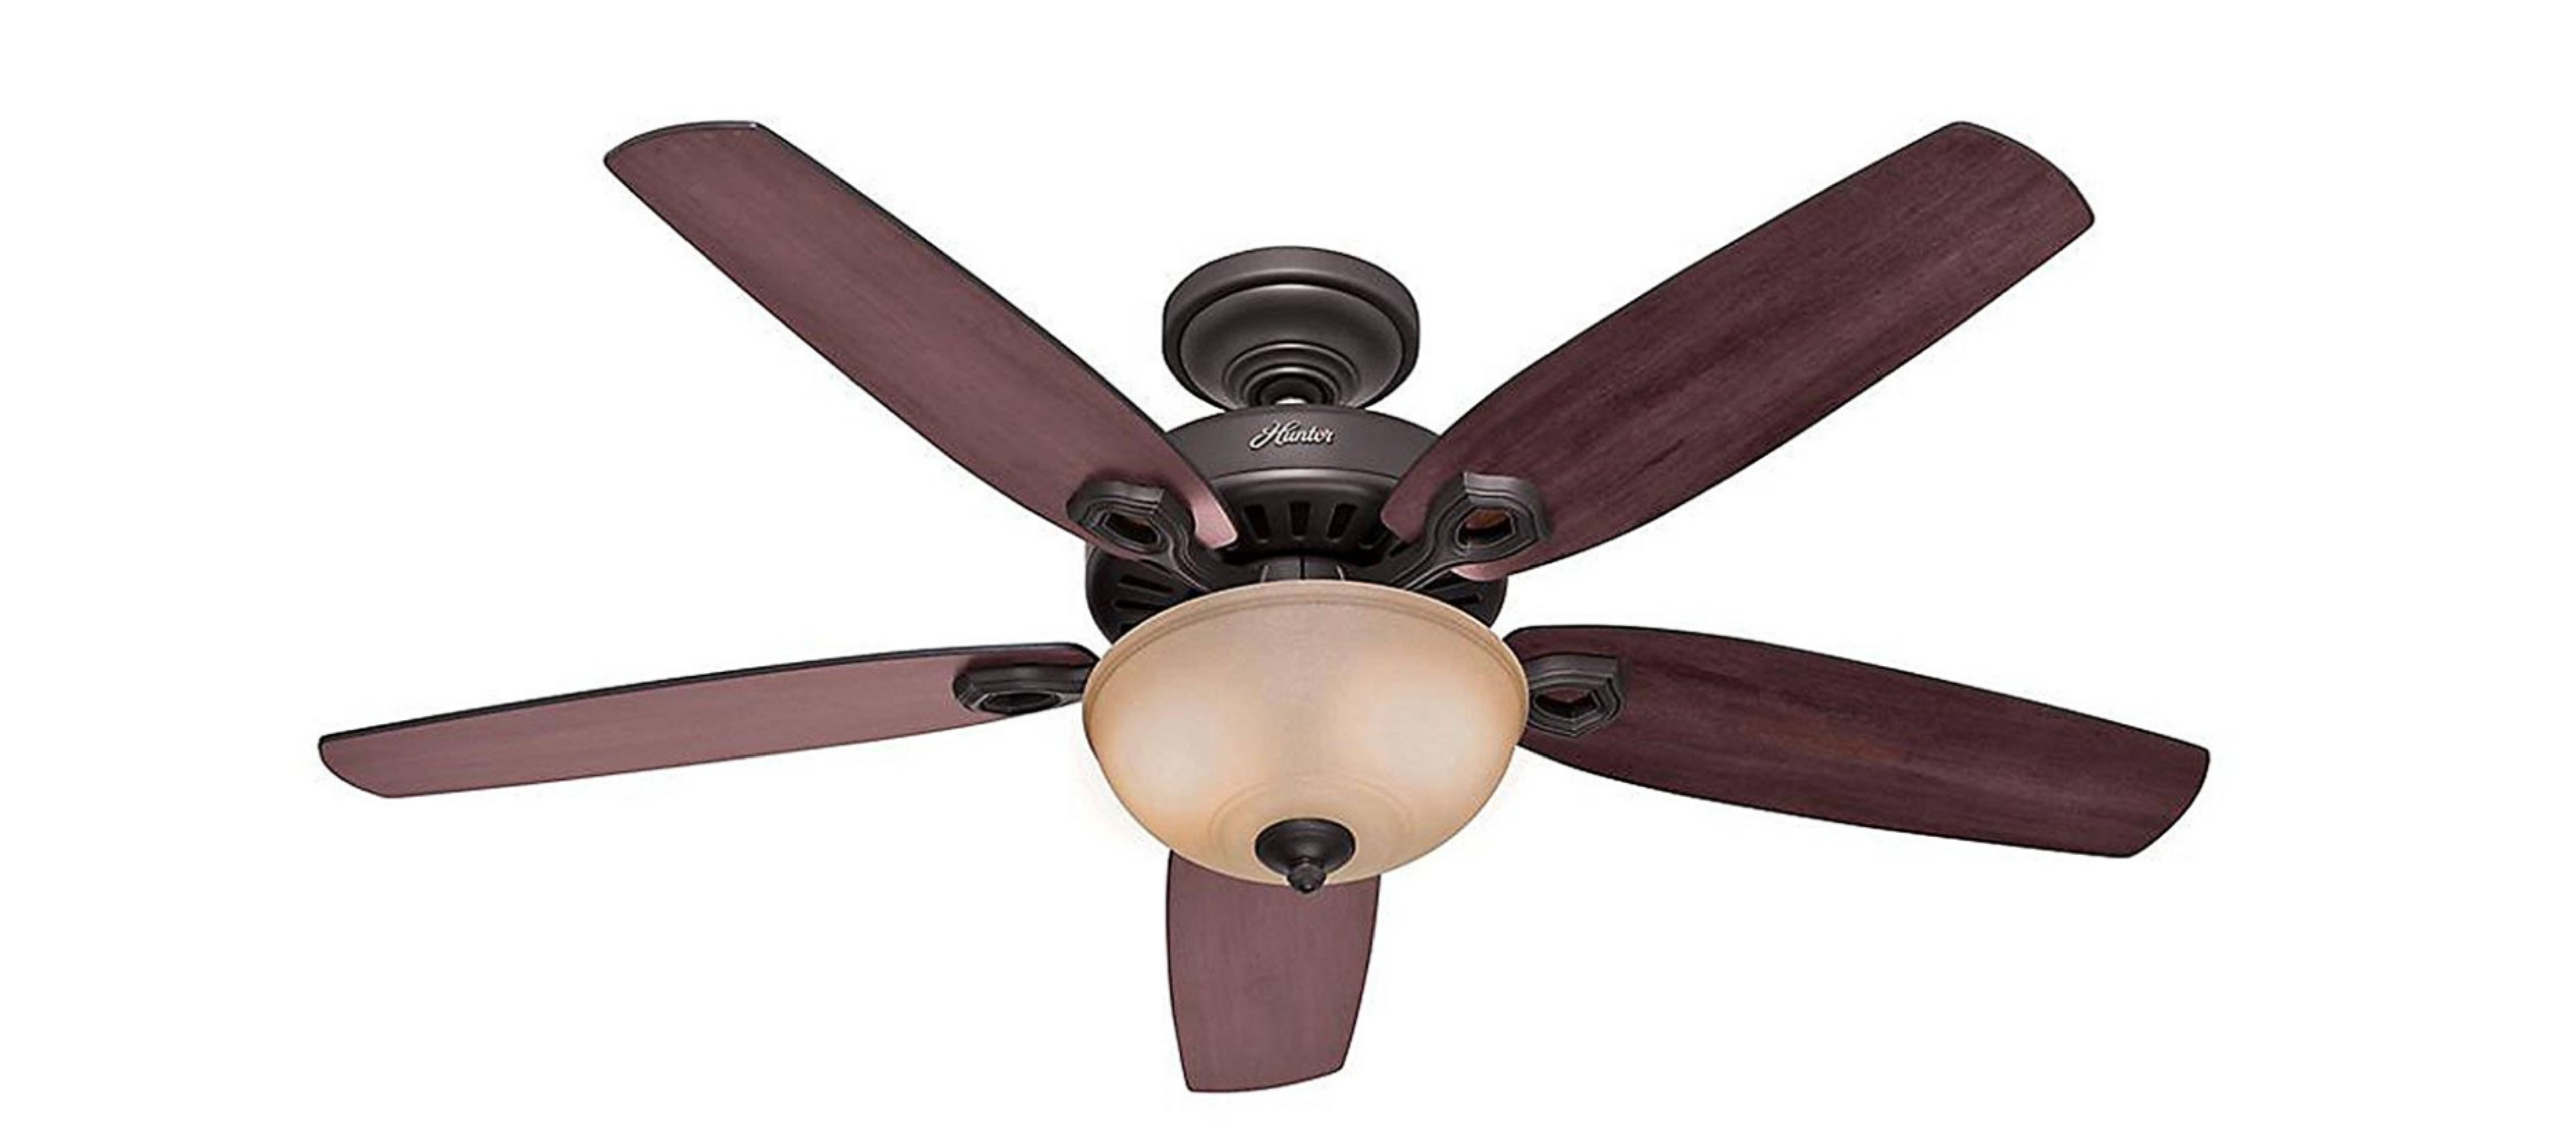 Top 20 Highest Rated Ceiling Fans | Tucson Sharp Electric